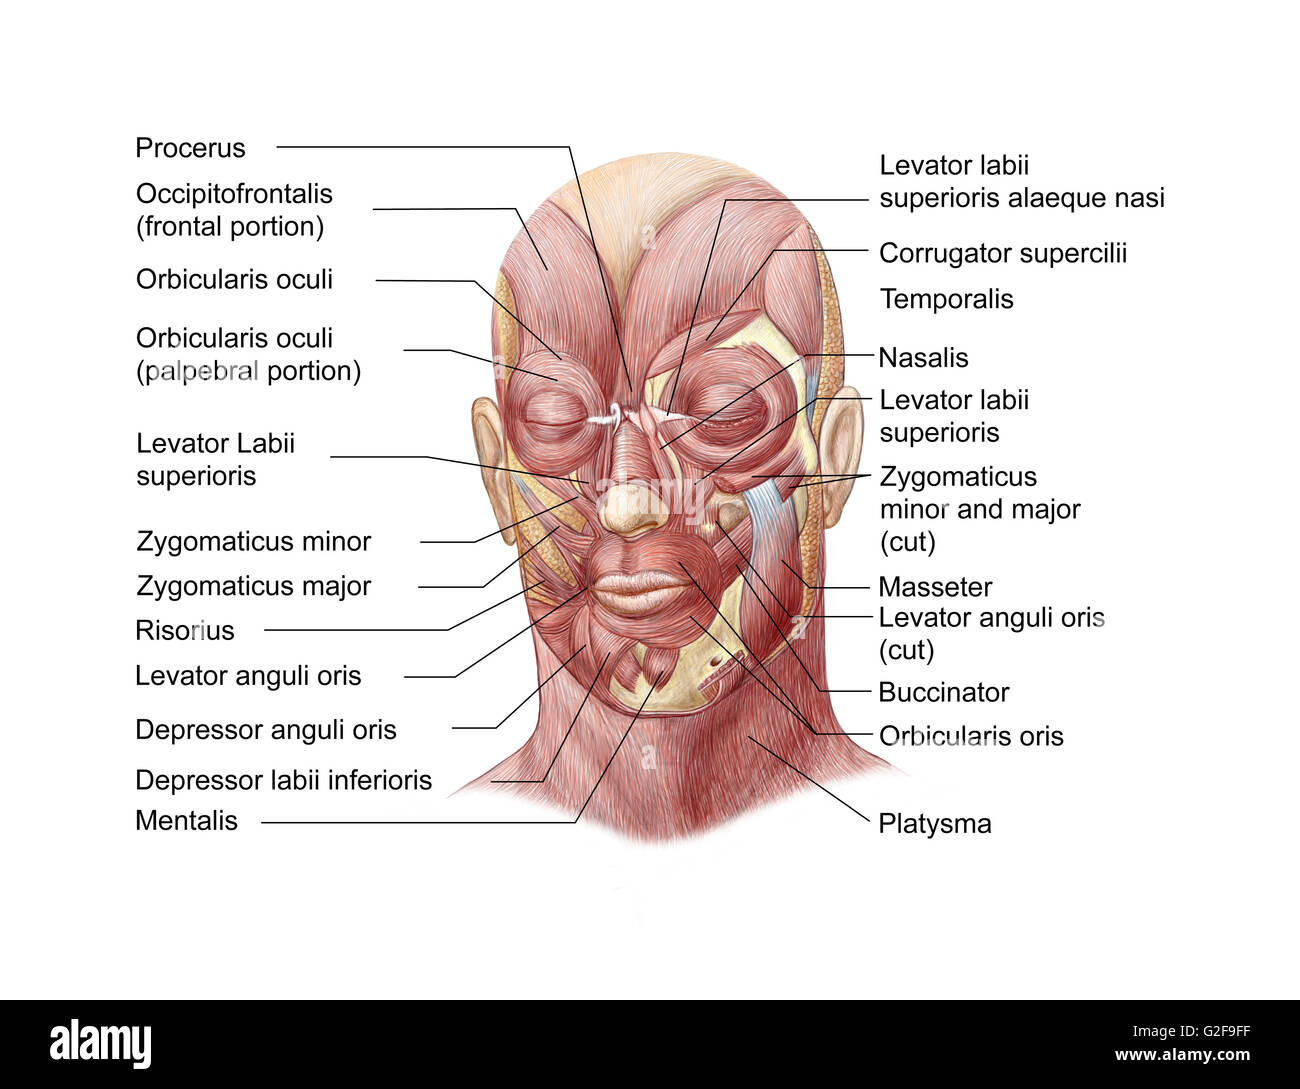 Procerus Muscle Stock Photos Procerus Muscle Stock Images Alamy